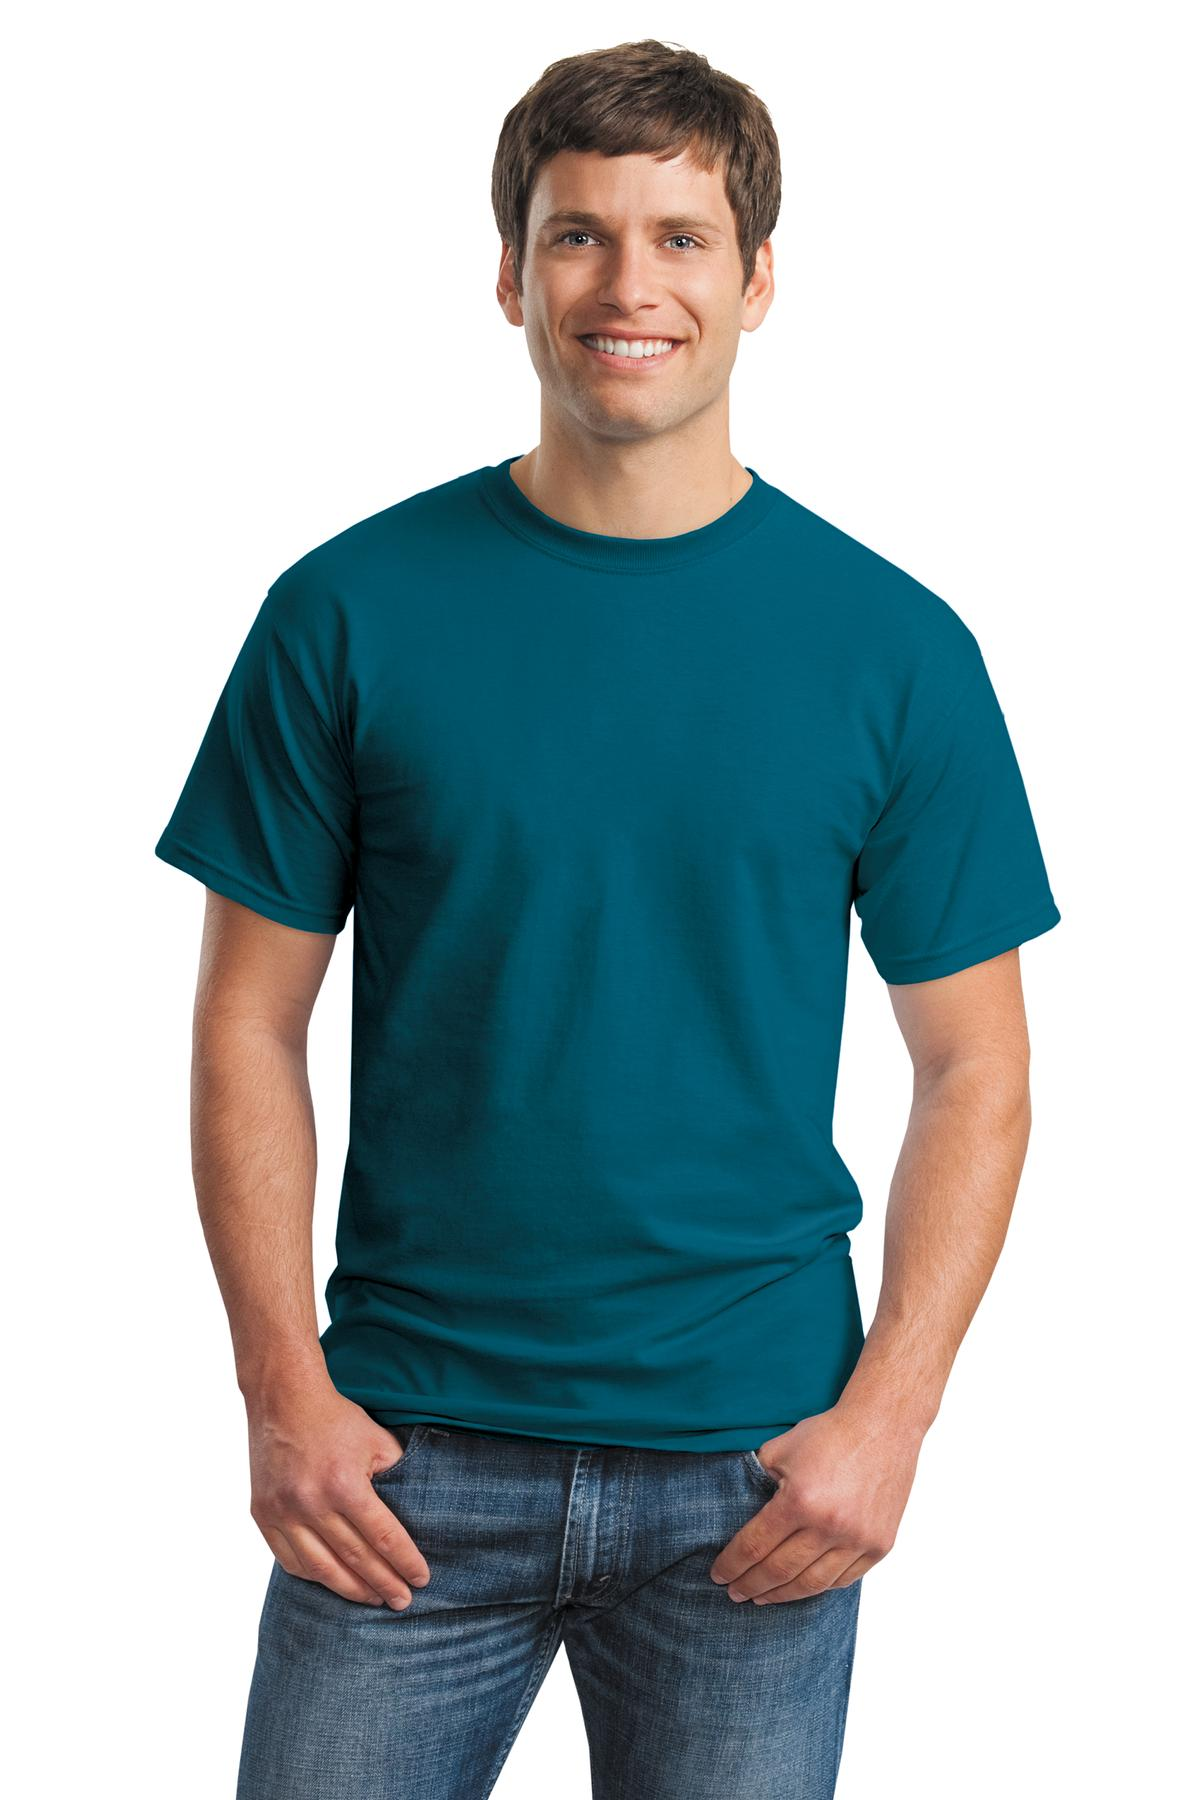 Gildan T-shirts Colors Shirts Polos Hanes Gildan From